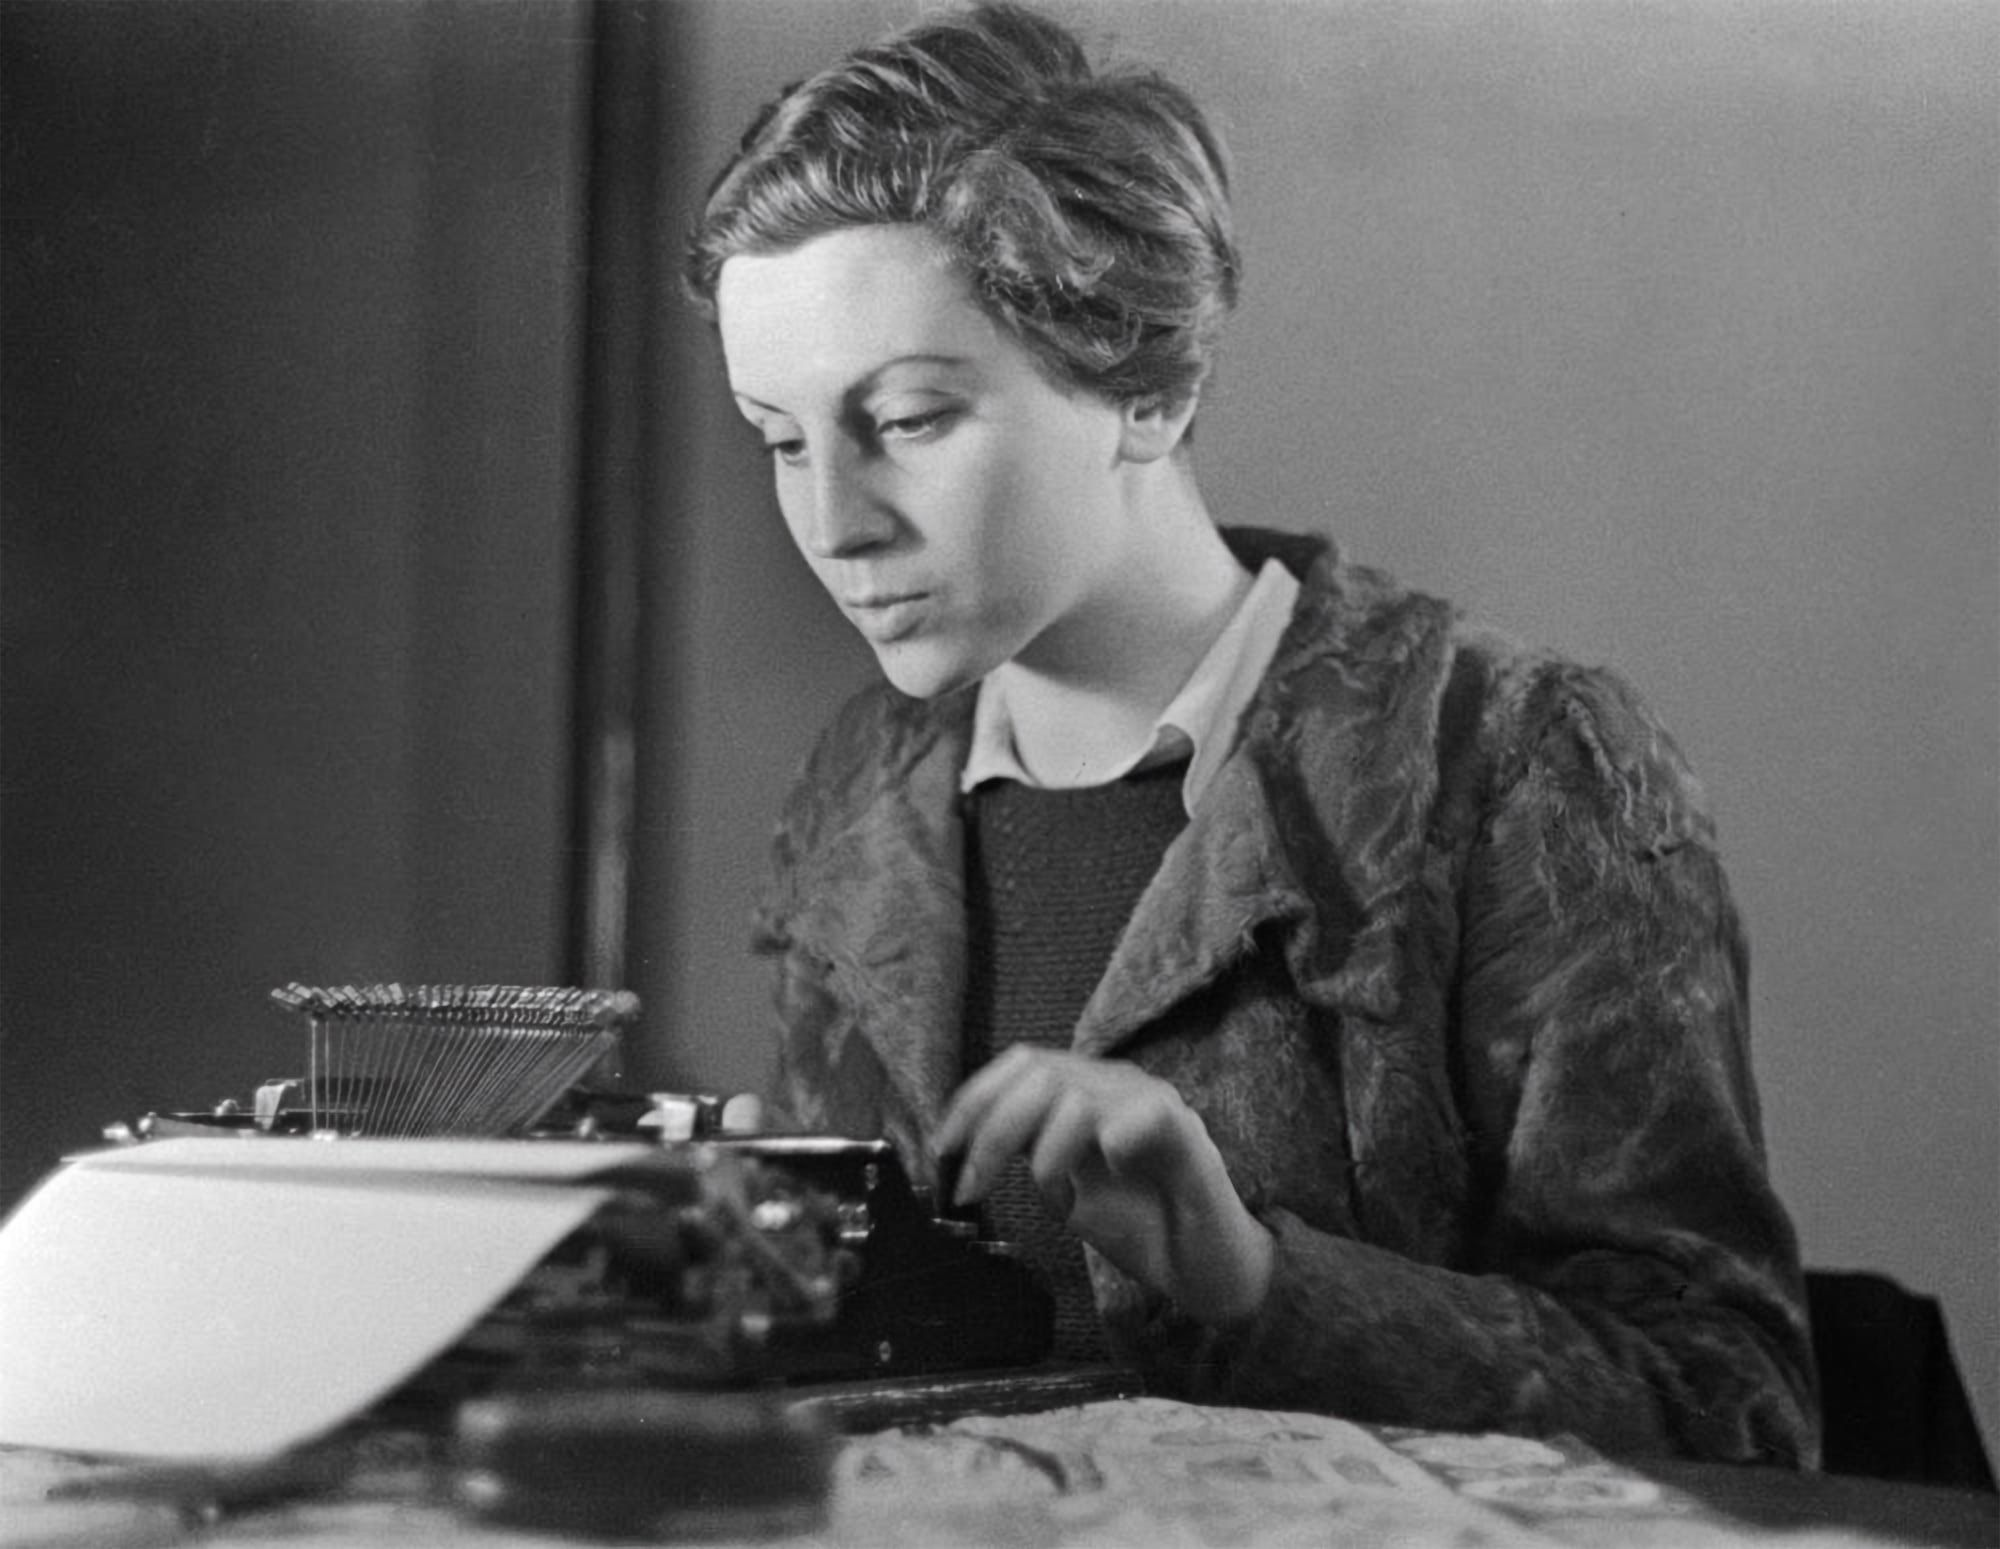 (fig. 1: Gerda Taro)